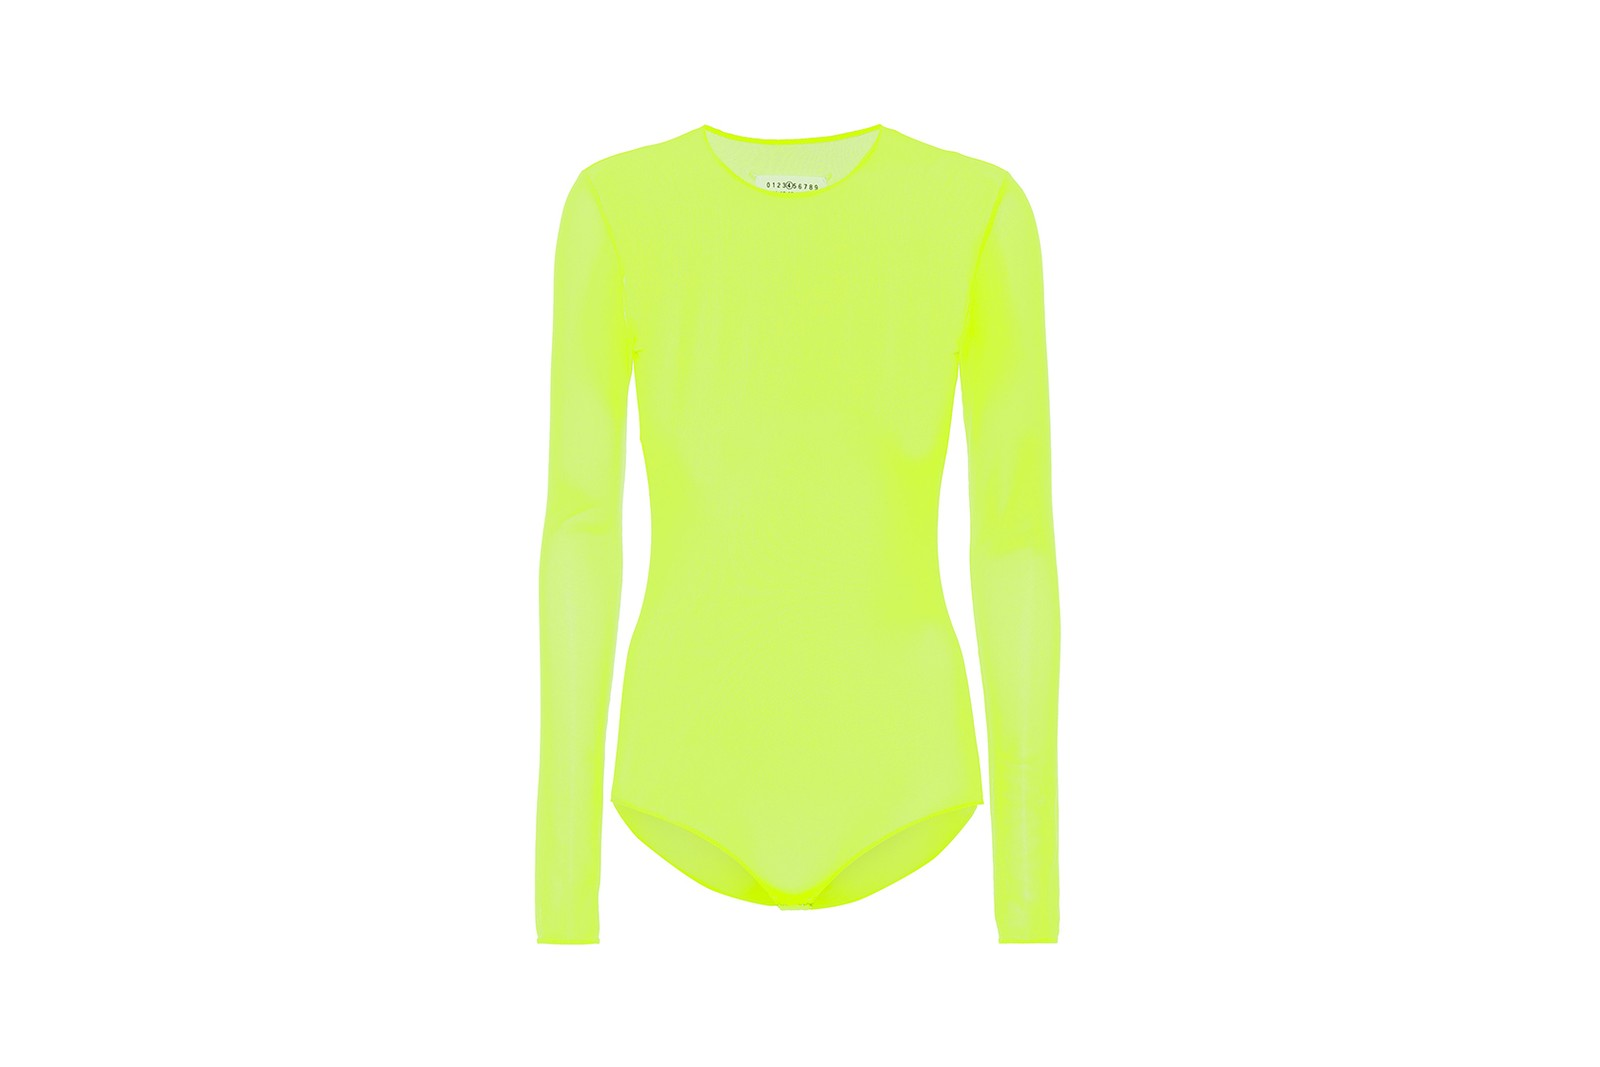 neon green tank top track pants fanny pack bum bag snakeprint jacket nike p-6000 sneakers bright vibrant outfit fashion style